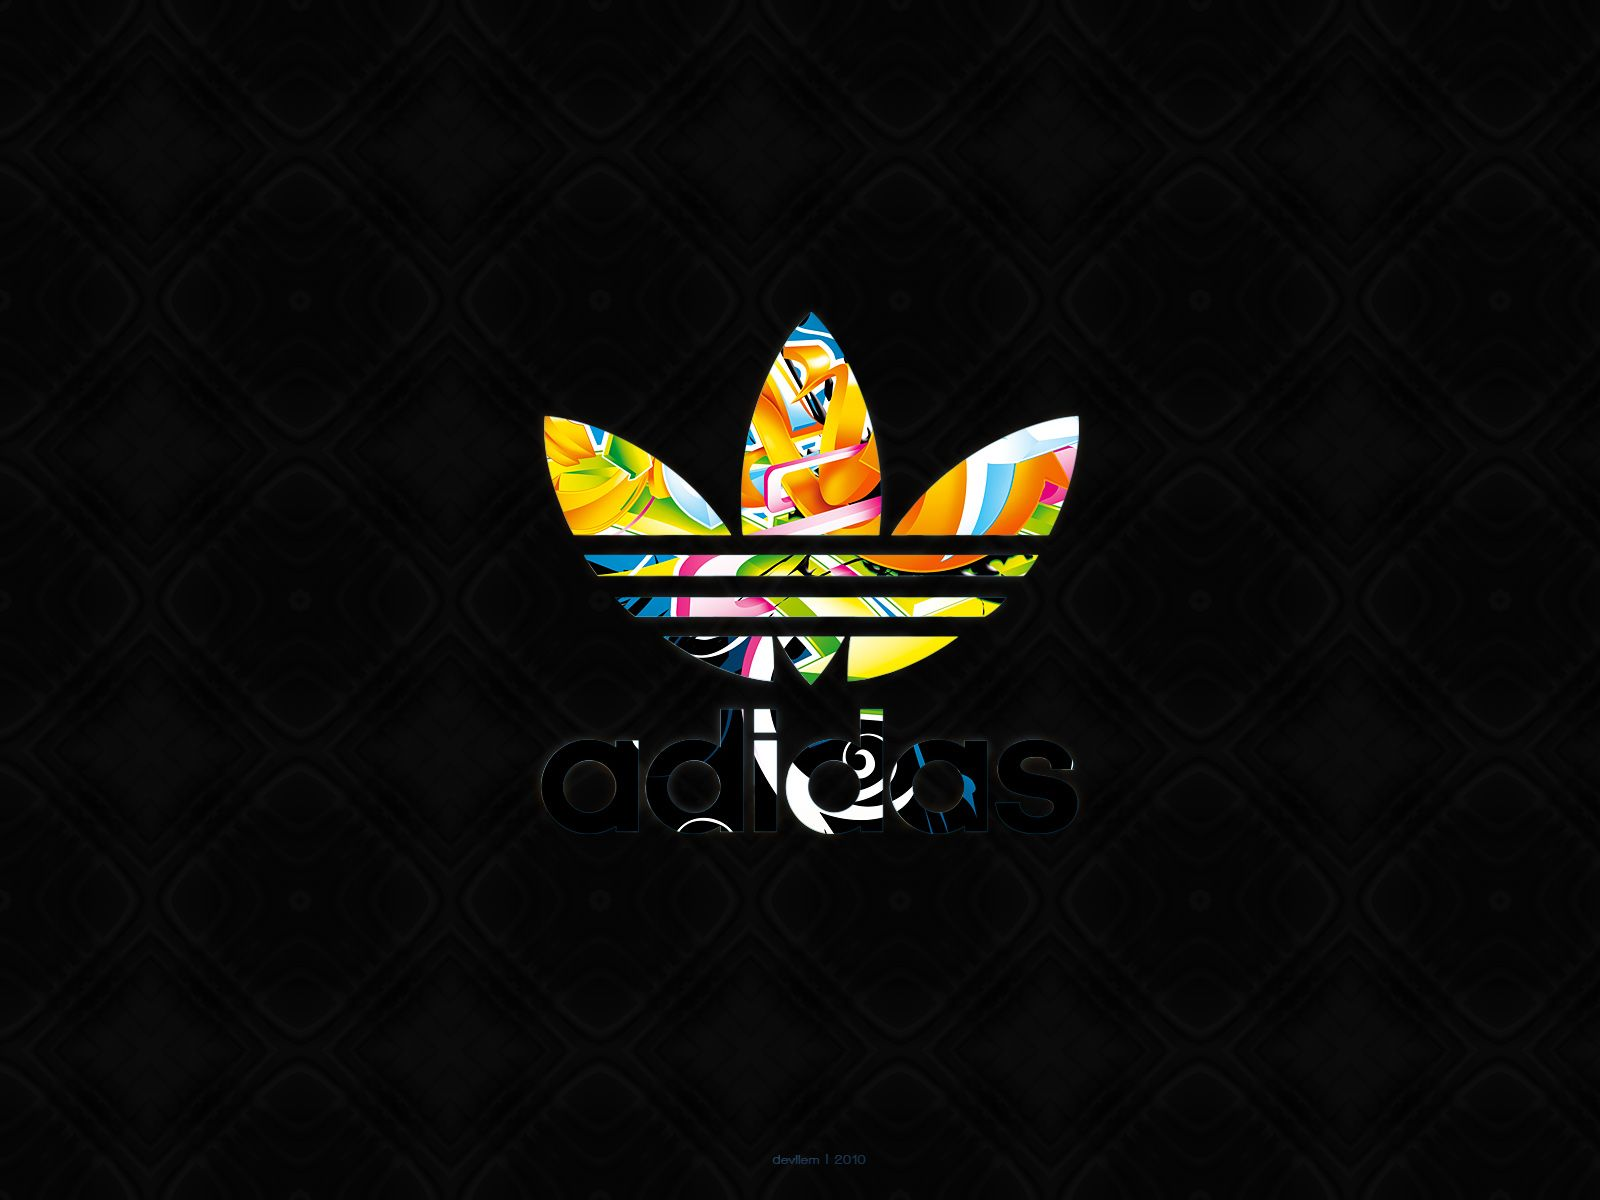 undefined Imagenes Adidas Wallpapers (32 Wallpapers